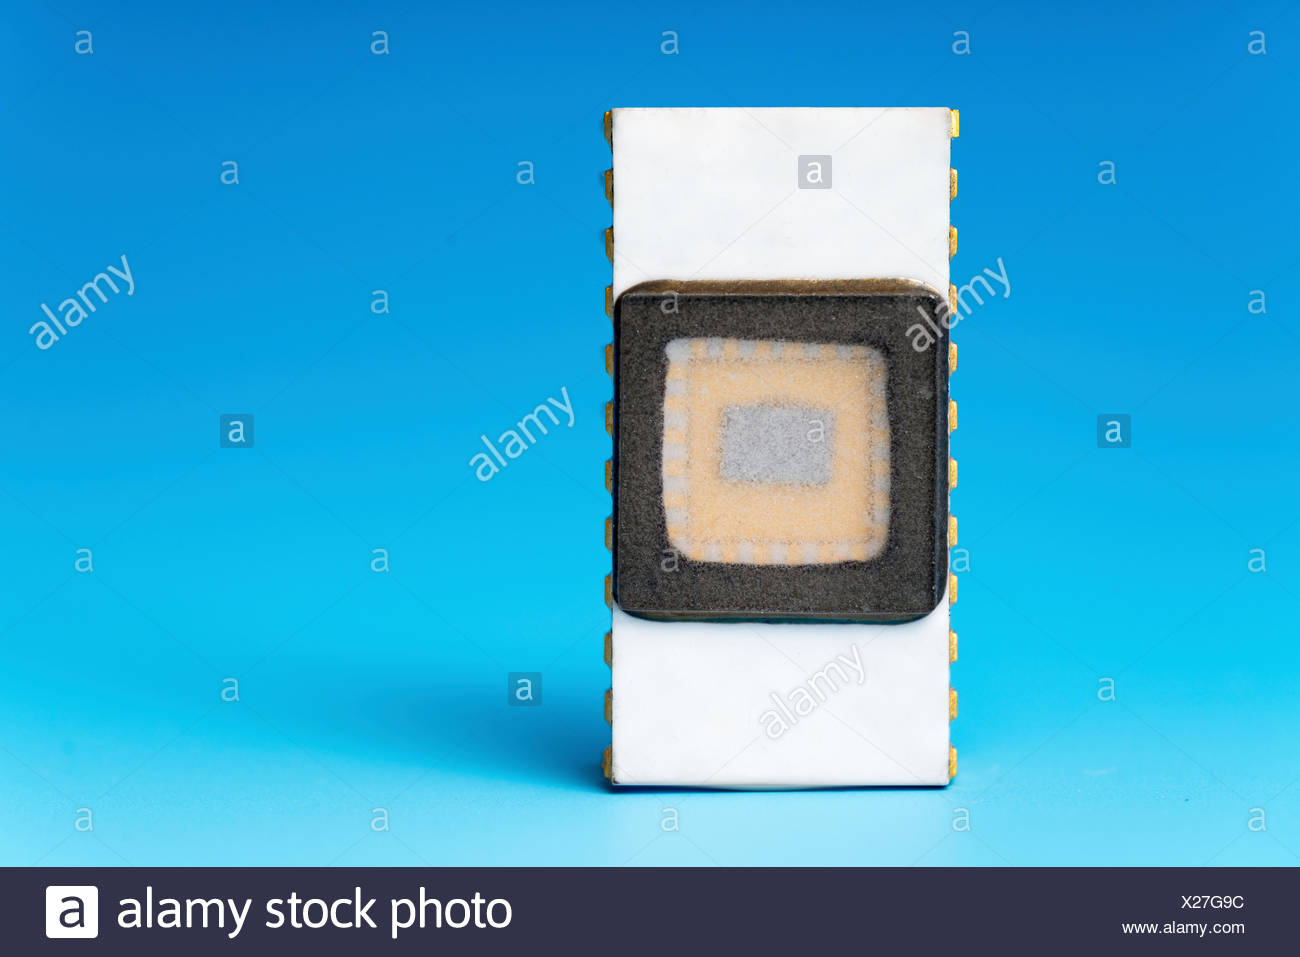 Quantum processor - Stock Image